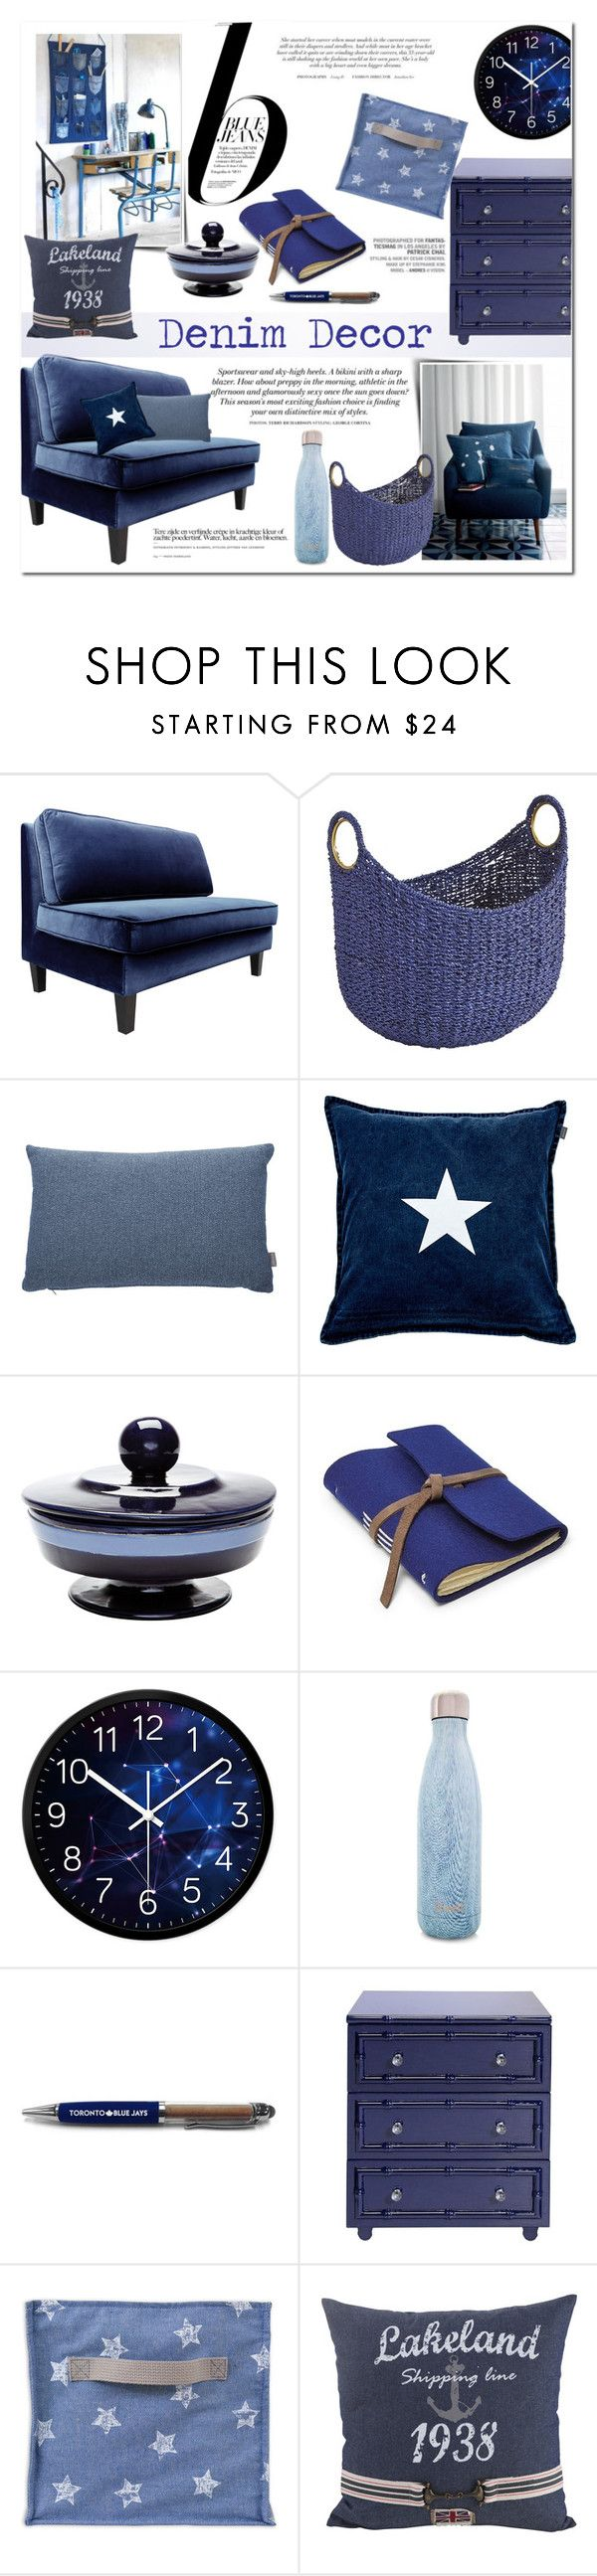 """""""Blue Jeans ~ Denim Decor"""" by alexandrazeres on Polyvore featuring interior, interiors, interior design, home, home decor, interior decorating, Dot & Bo, H&M, Pier 1 Imports and Heal's"""